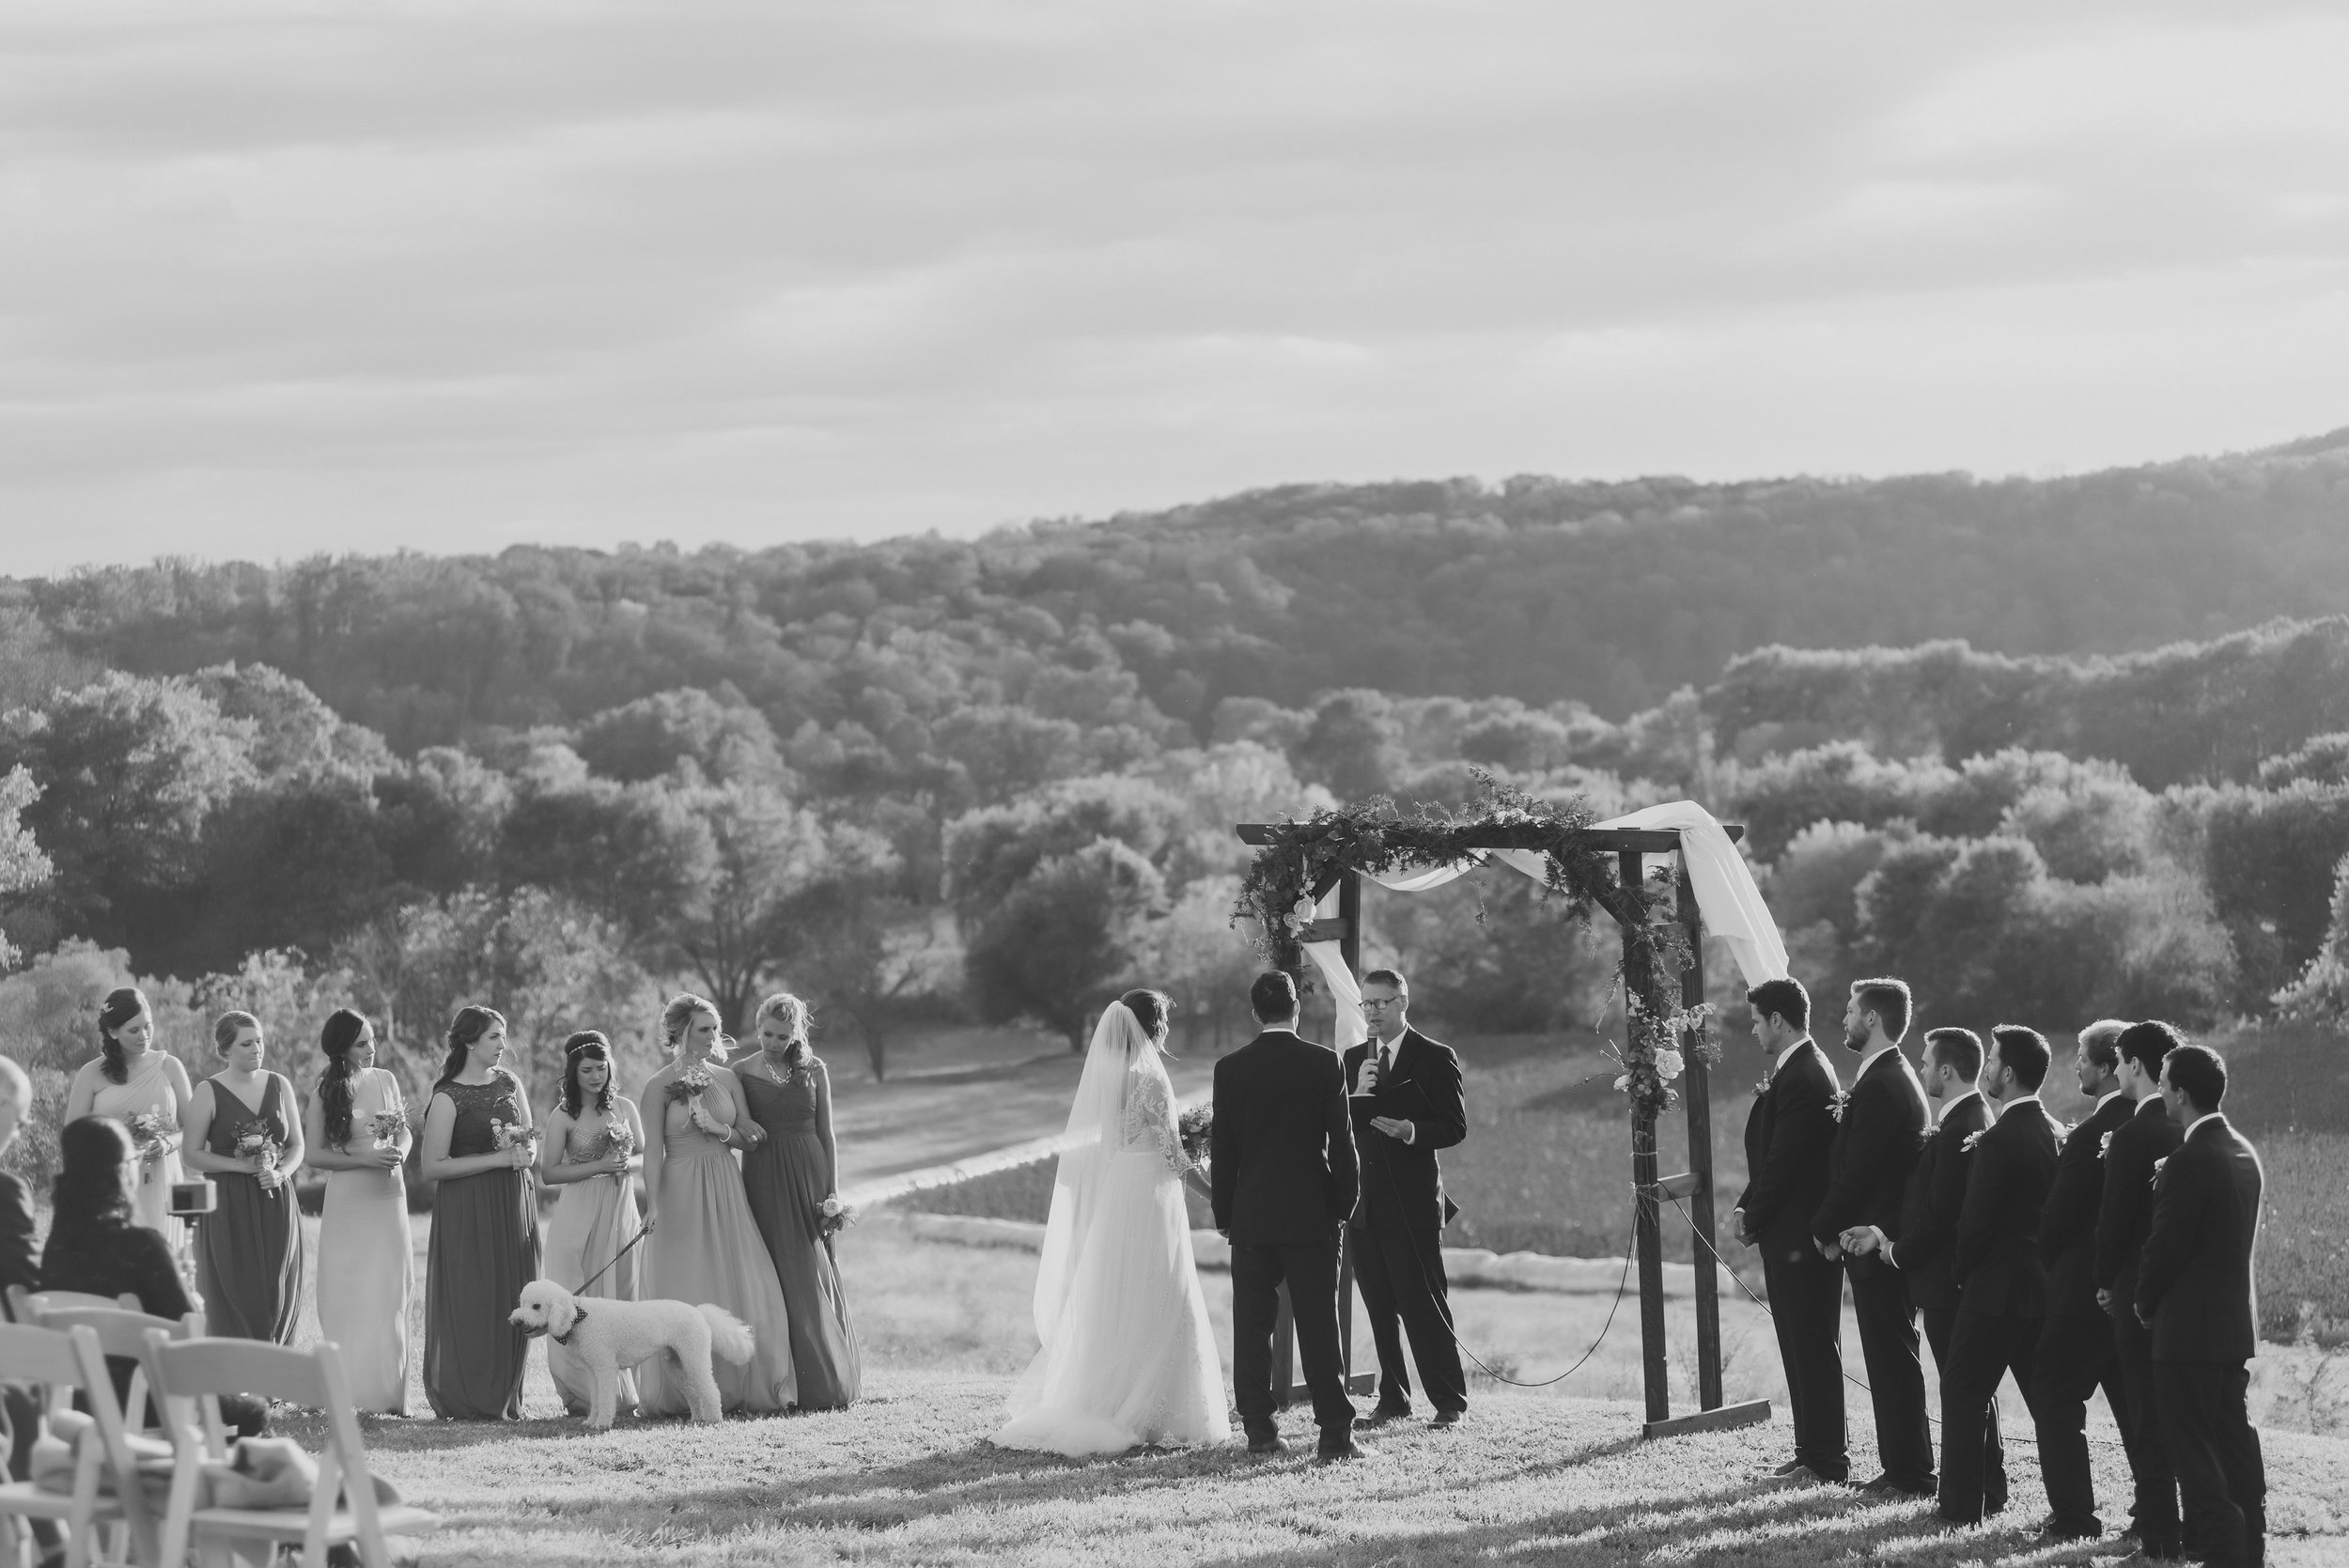 MissouriRusticWedding_StLouisWeddingPhotographer_AliciaDan_CatherineRhodesPhotography-3470-Edit.jpg